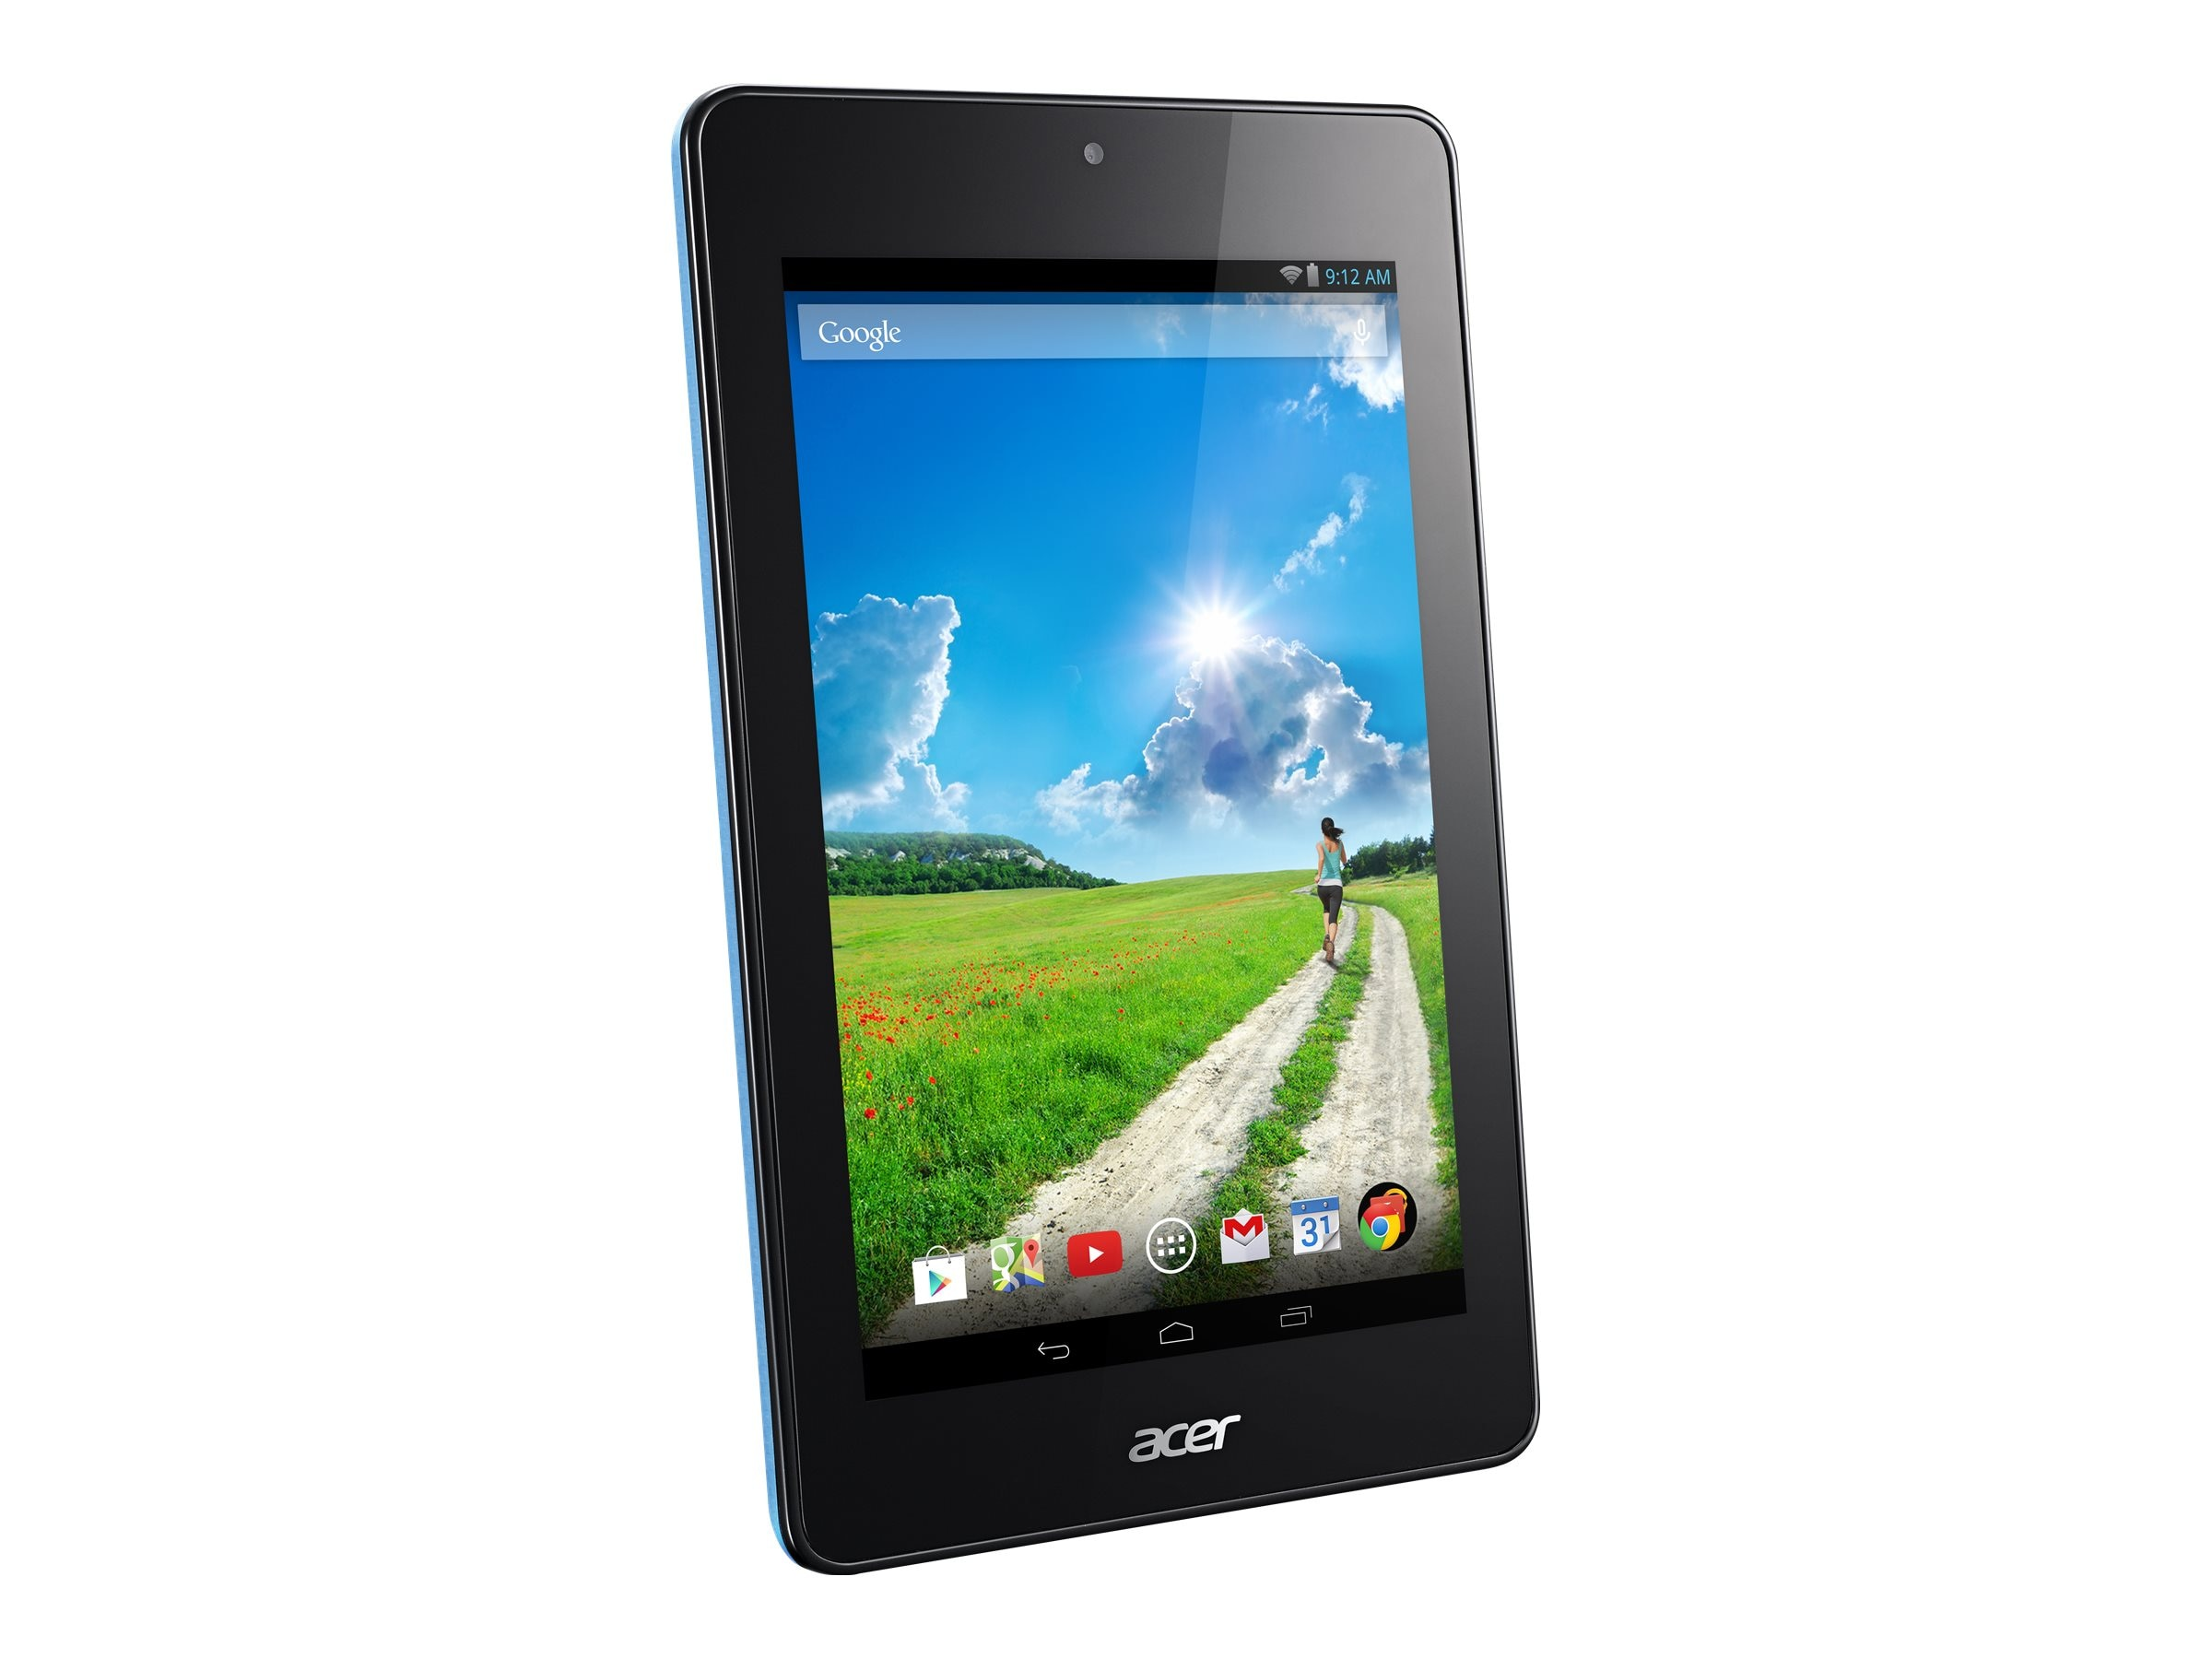 Acer Iconia One B1-730 7 Tablet PC, Light Blue